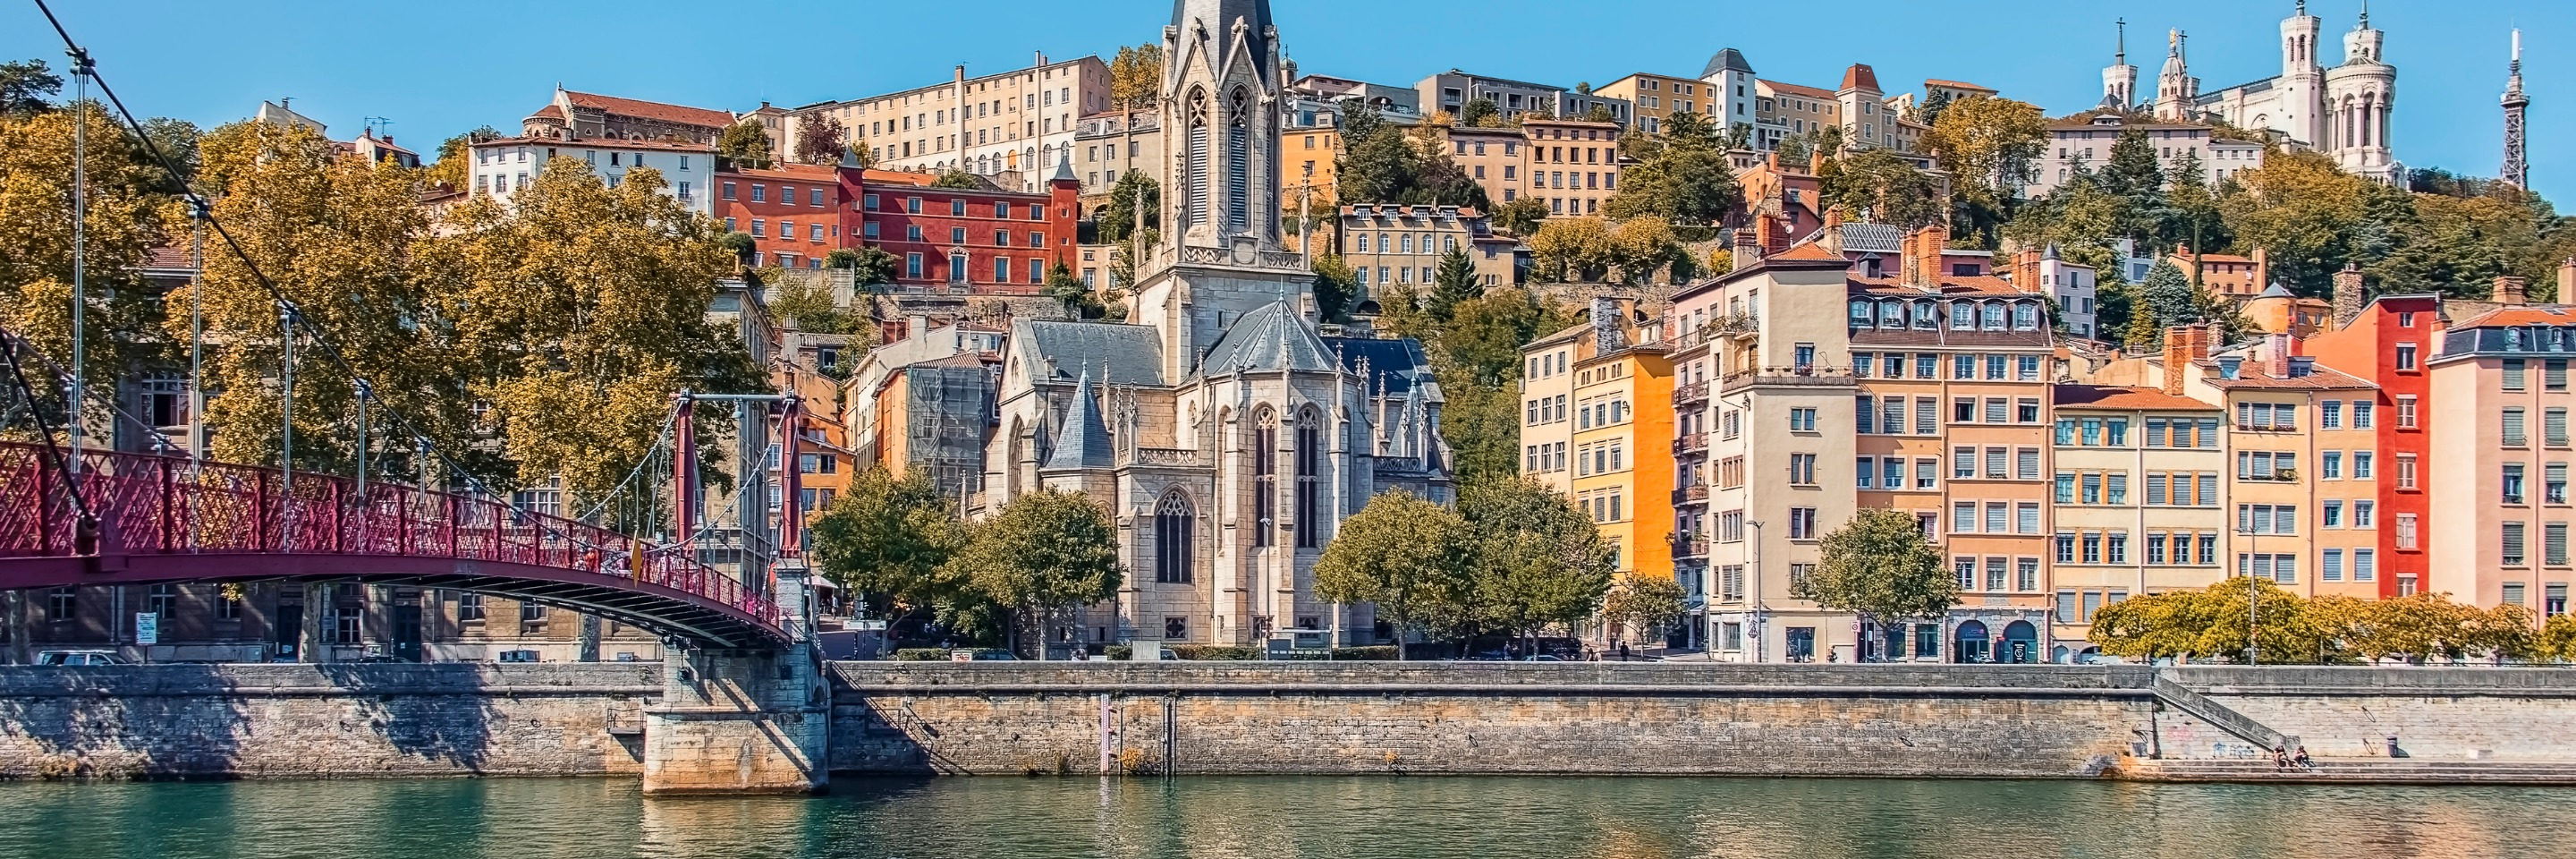 Burgundy & Provence with 2   Nights in Nice, 2 Nights in Paris & 3 Nights in London for Wine Lovers   (Northbound)